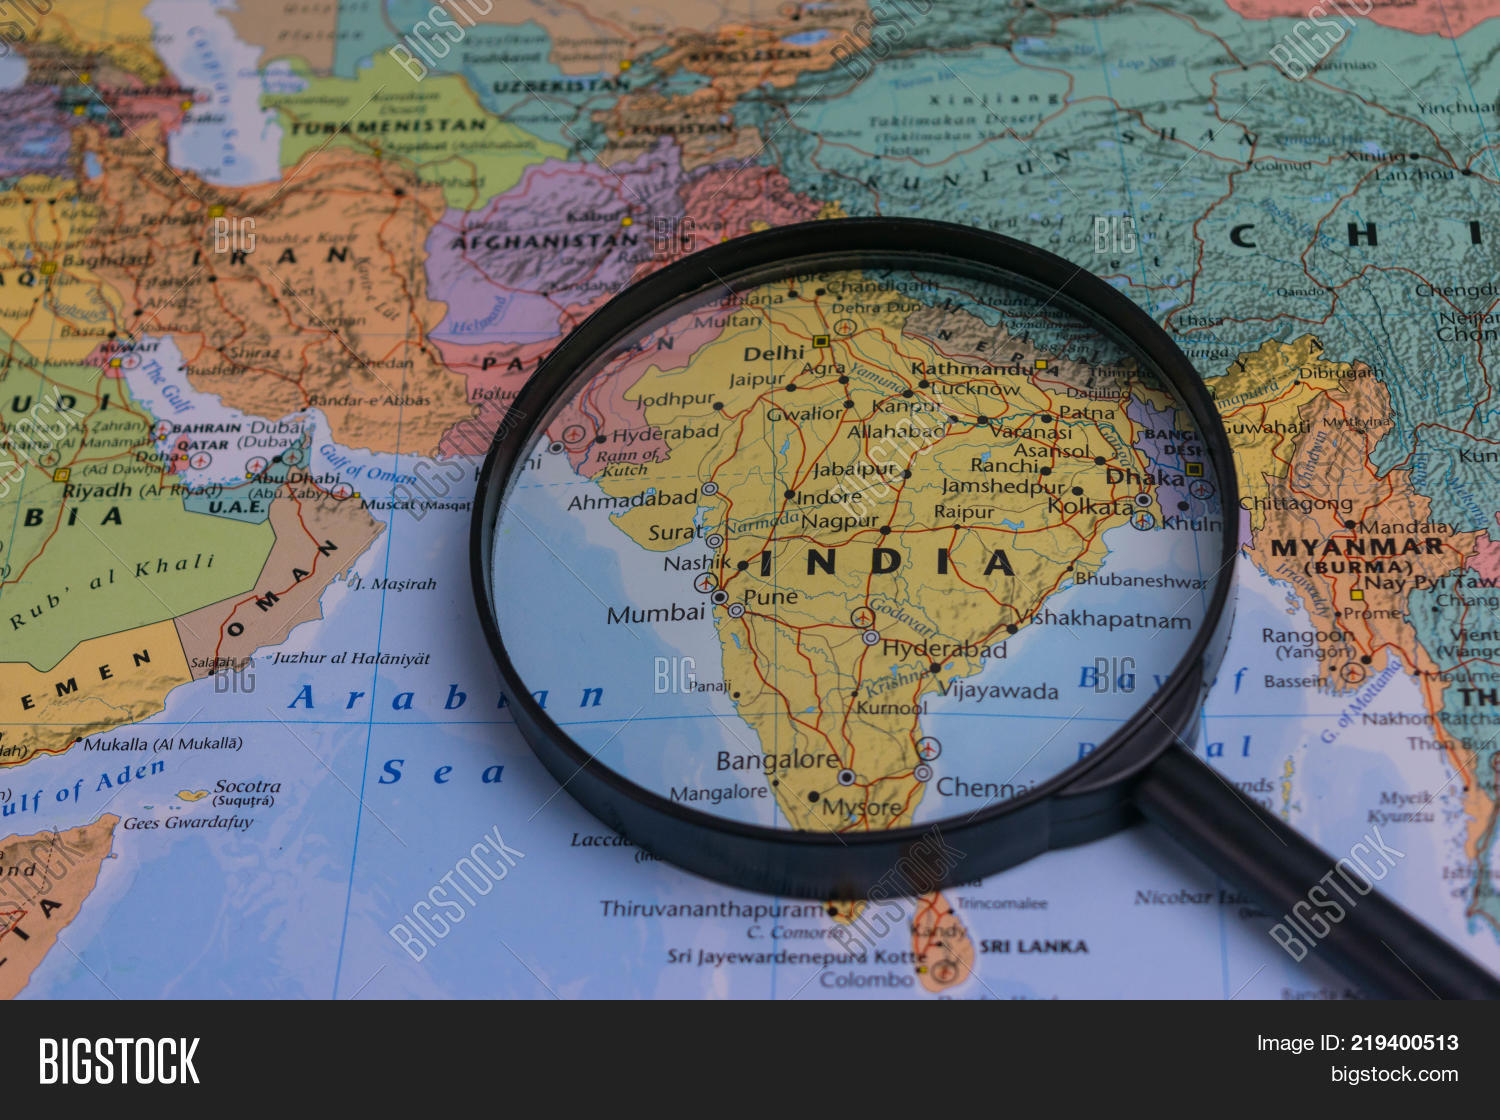 India map through image photo free trial bigstock india map through magnifying glass on a world map gumiabroncs Image collections